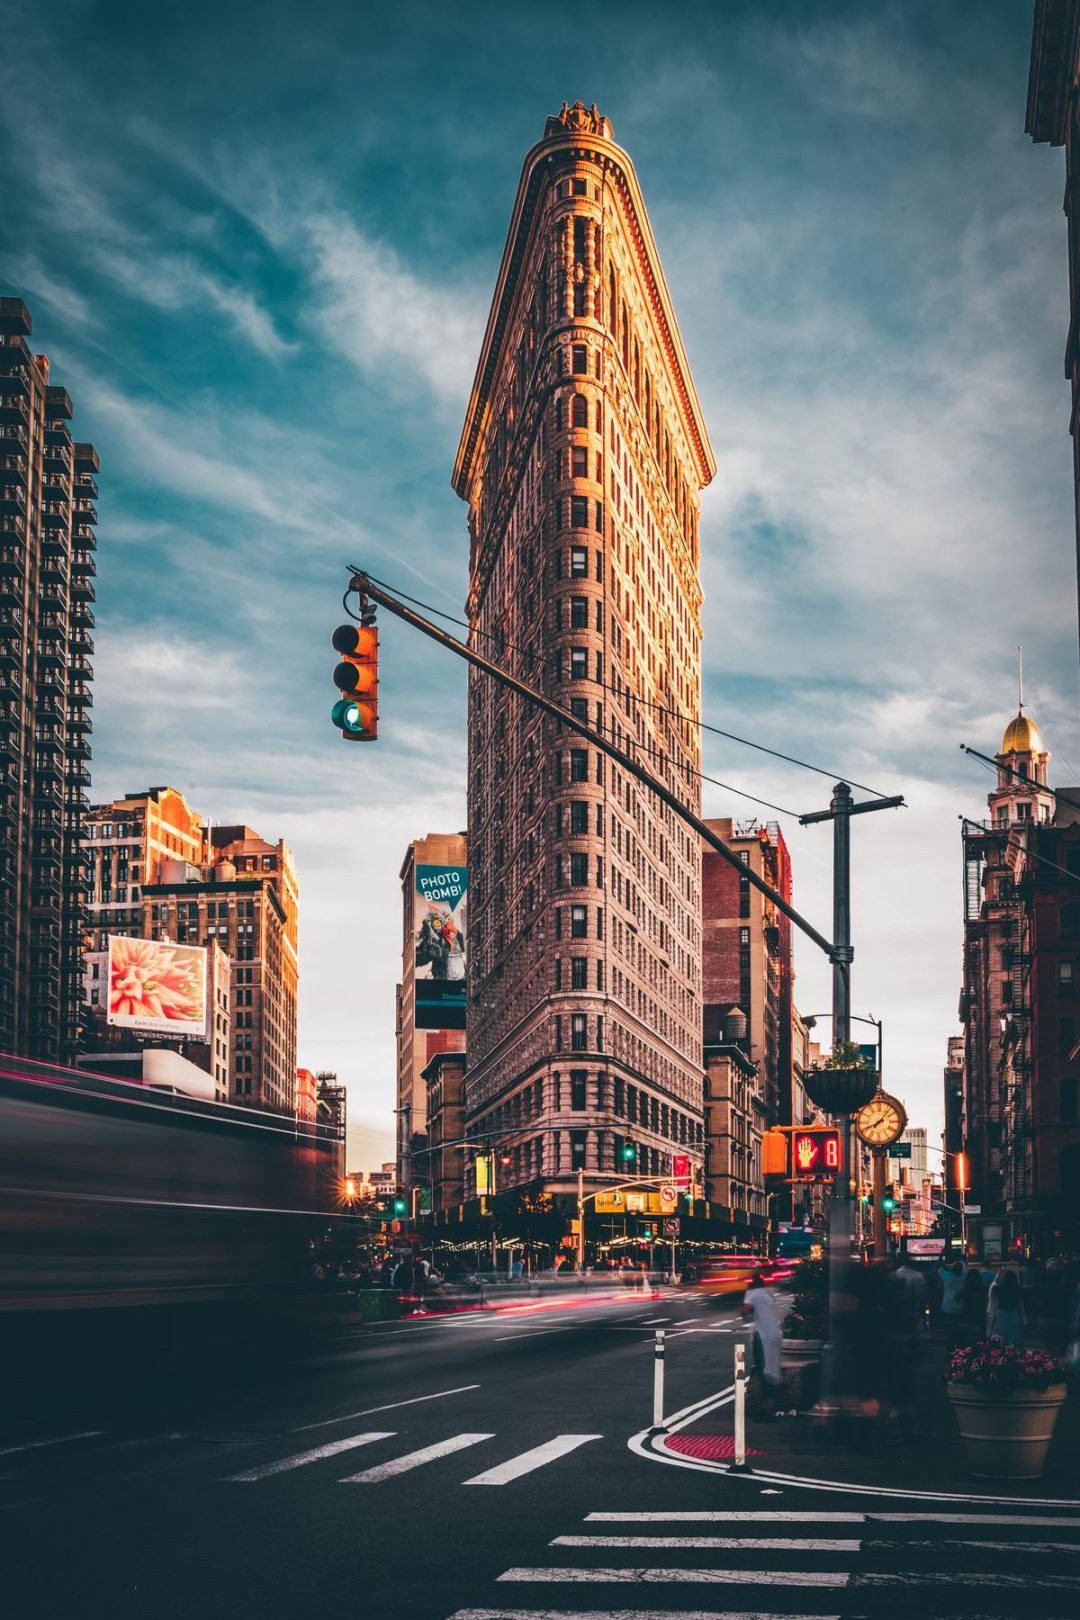 Aesthetic New York City wallpapers for iPhone with Flat Iron Building photography